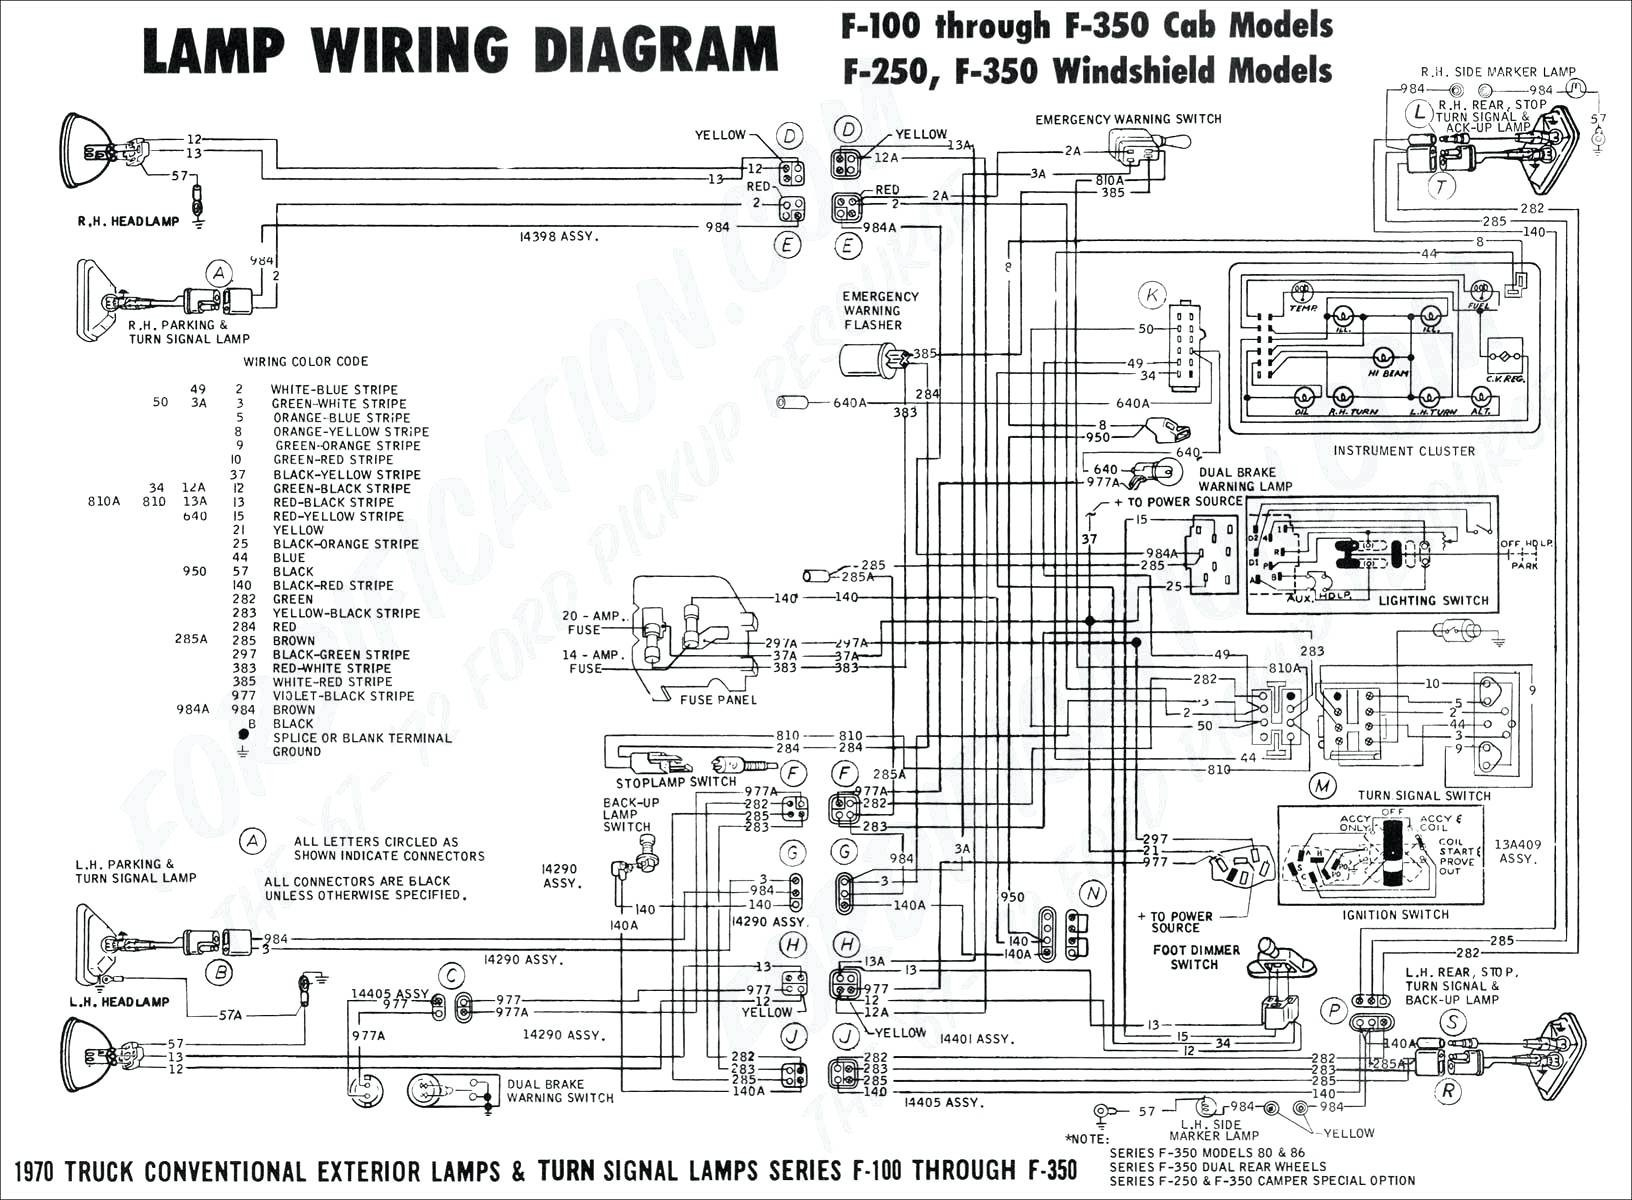 2001 f150 trailer wiring harness f150 trailer wiring harness diagram 2005 ford f150 trailer wiring diagram | free wiring diagram